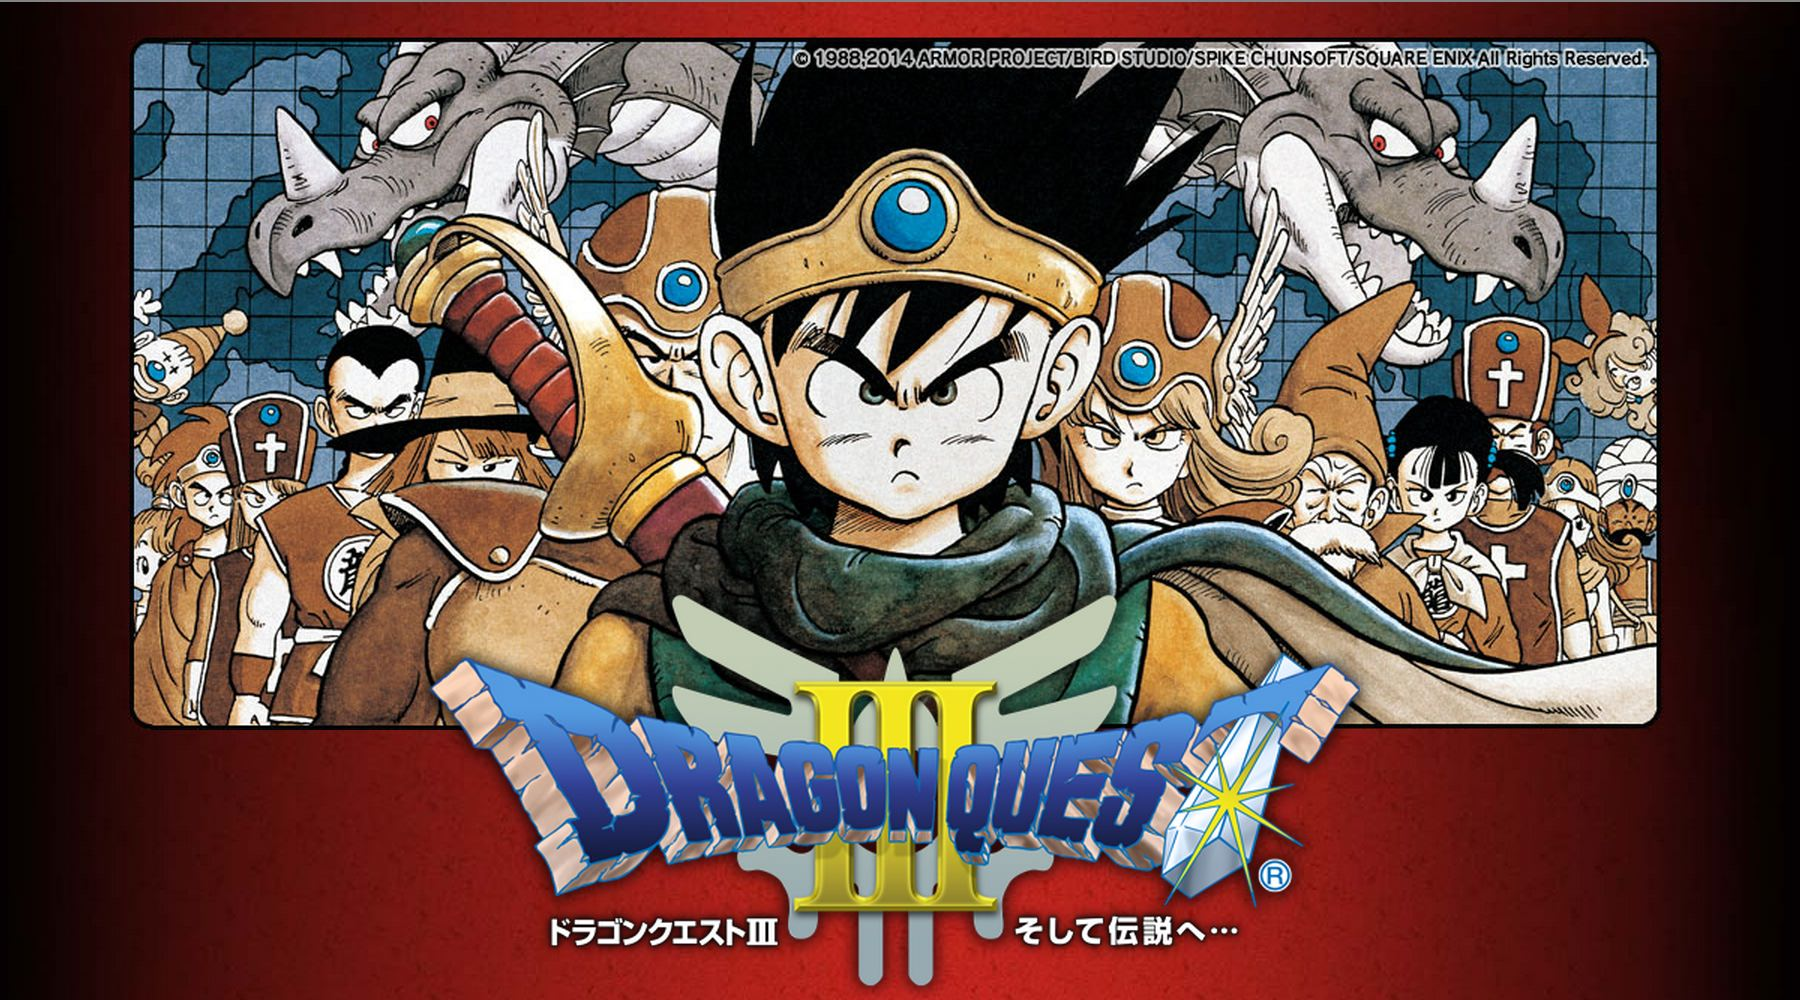 Dragon quest 3 for smartphone release